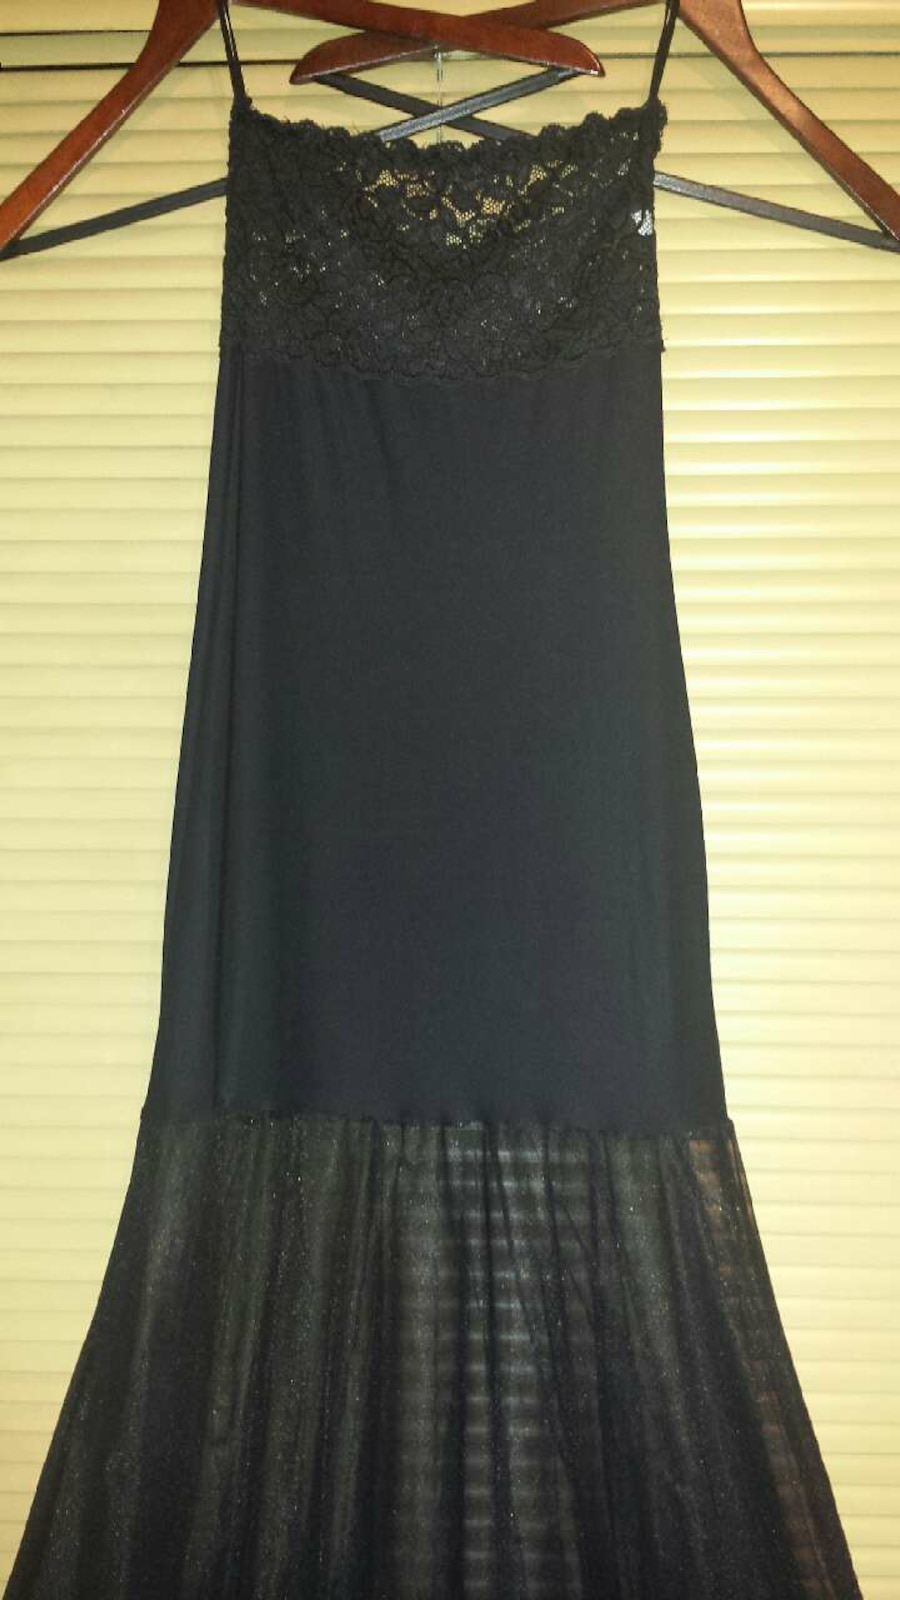 Petite S Fishnet and lace black babydoll gown $15  - Scotts Corners